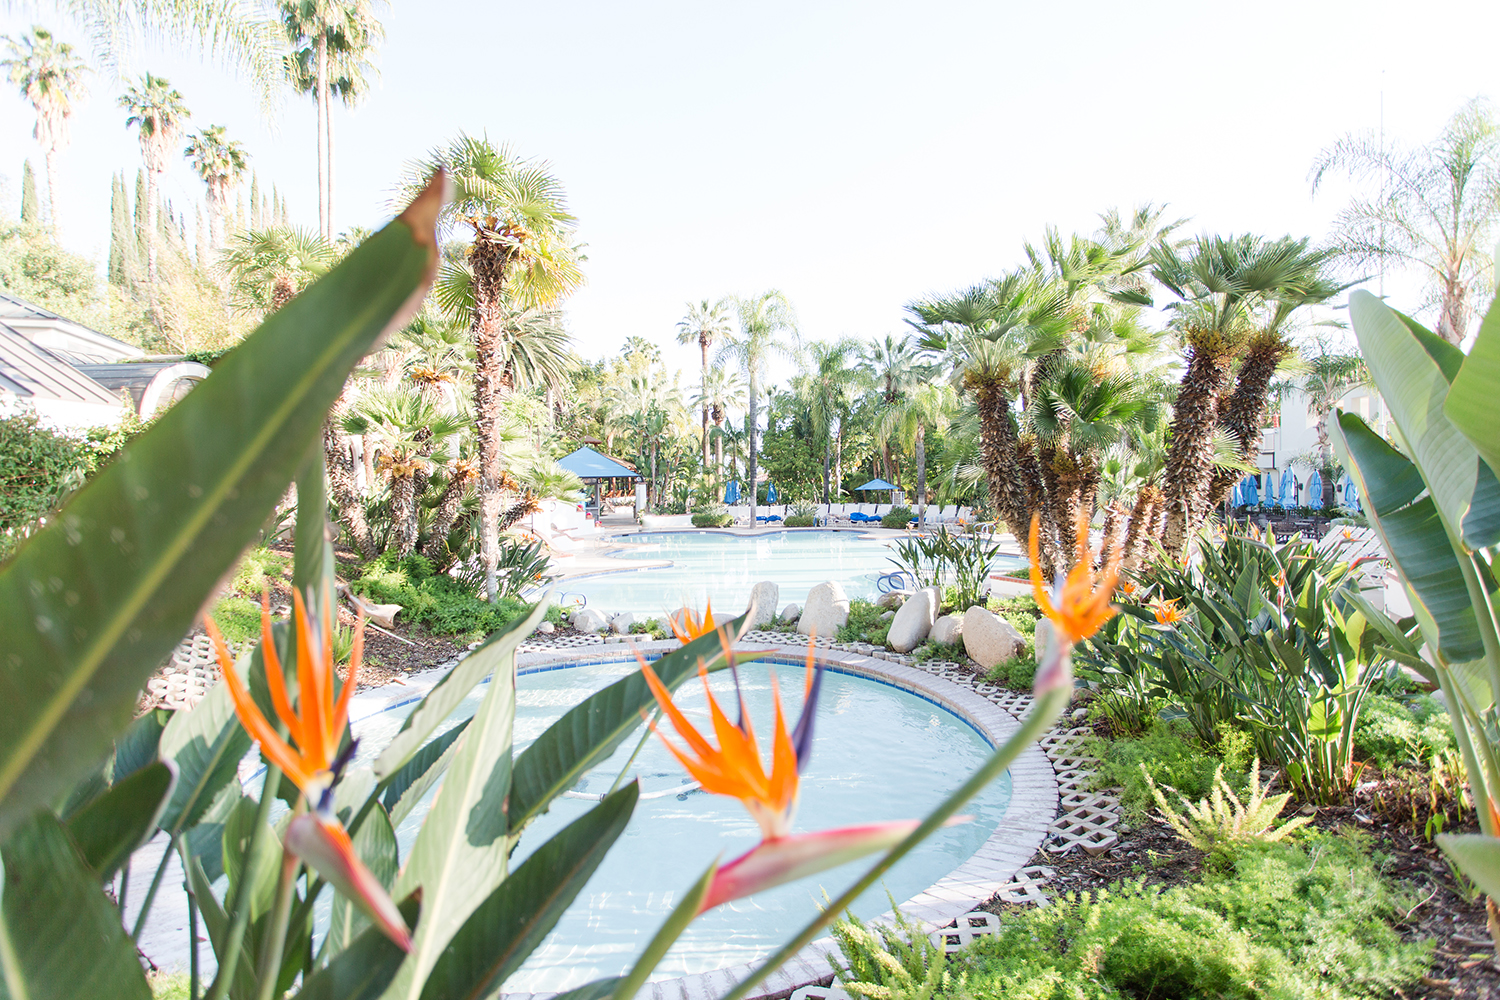 Glen Ivy Hot Springs is an ideal destination to unwind and relax with friends, family or solo.